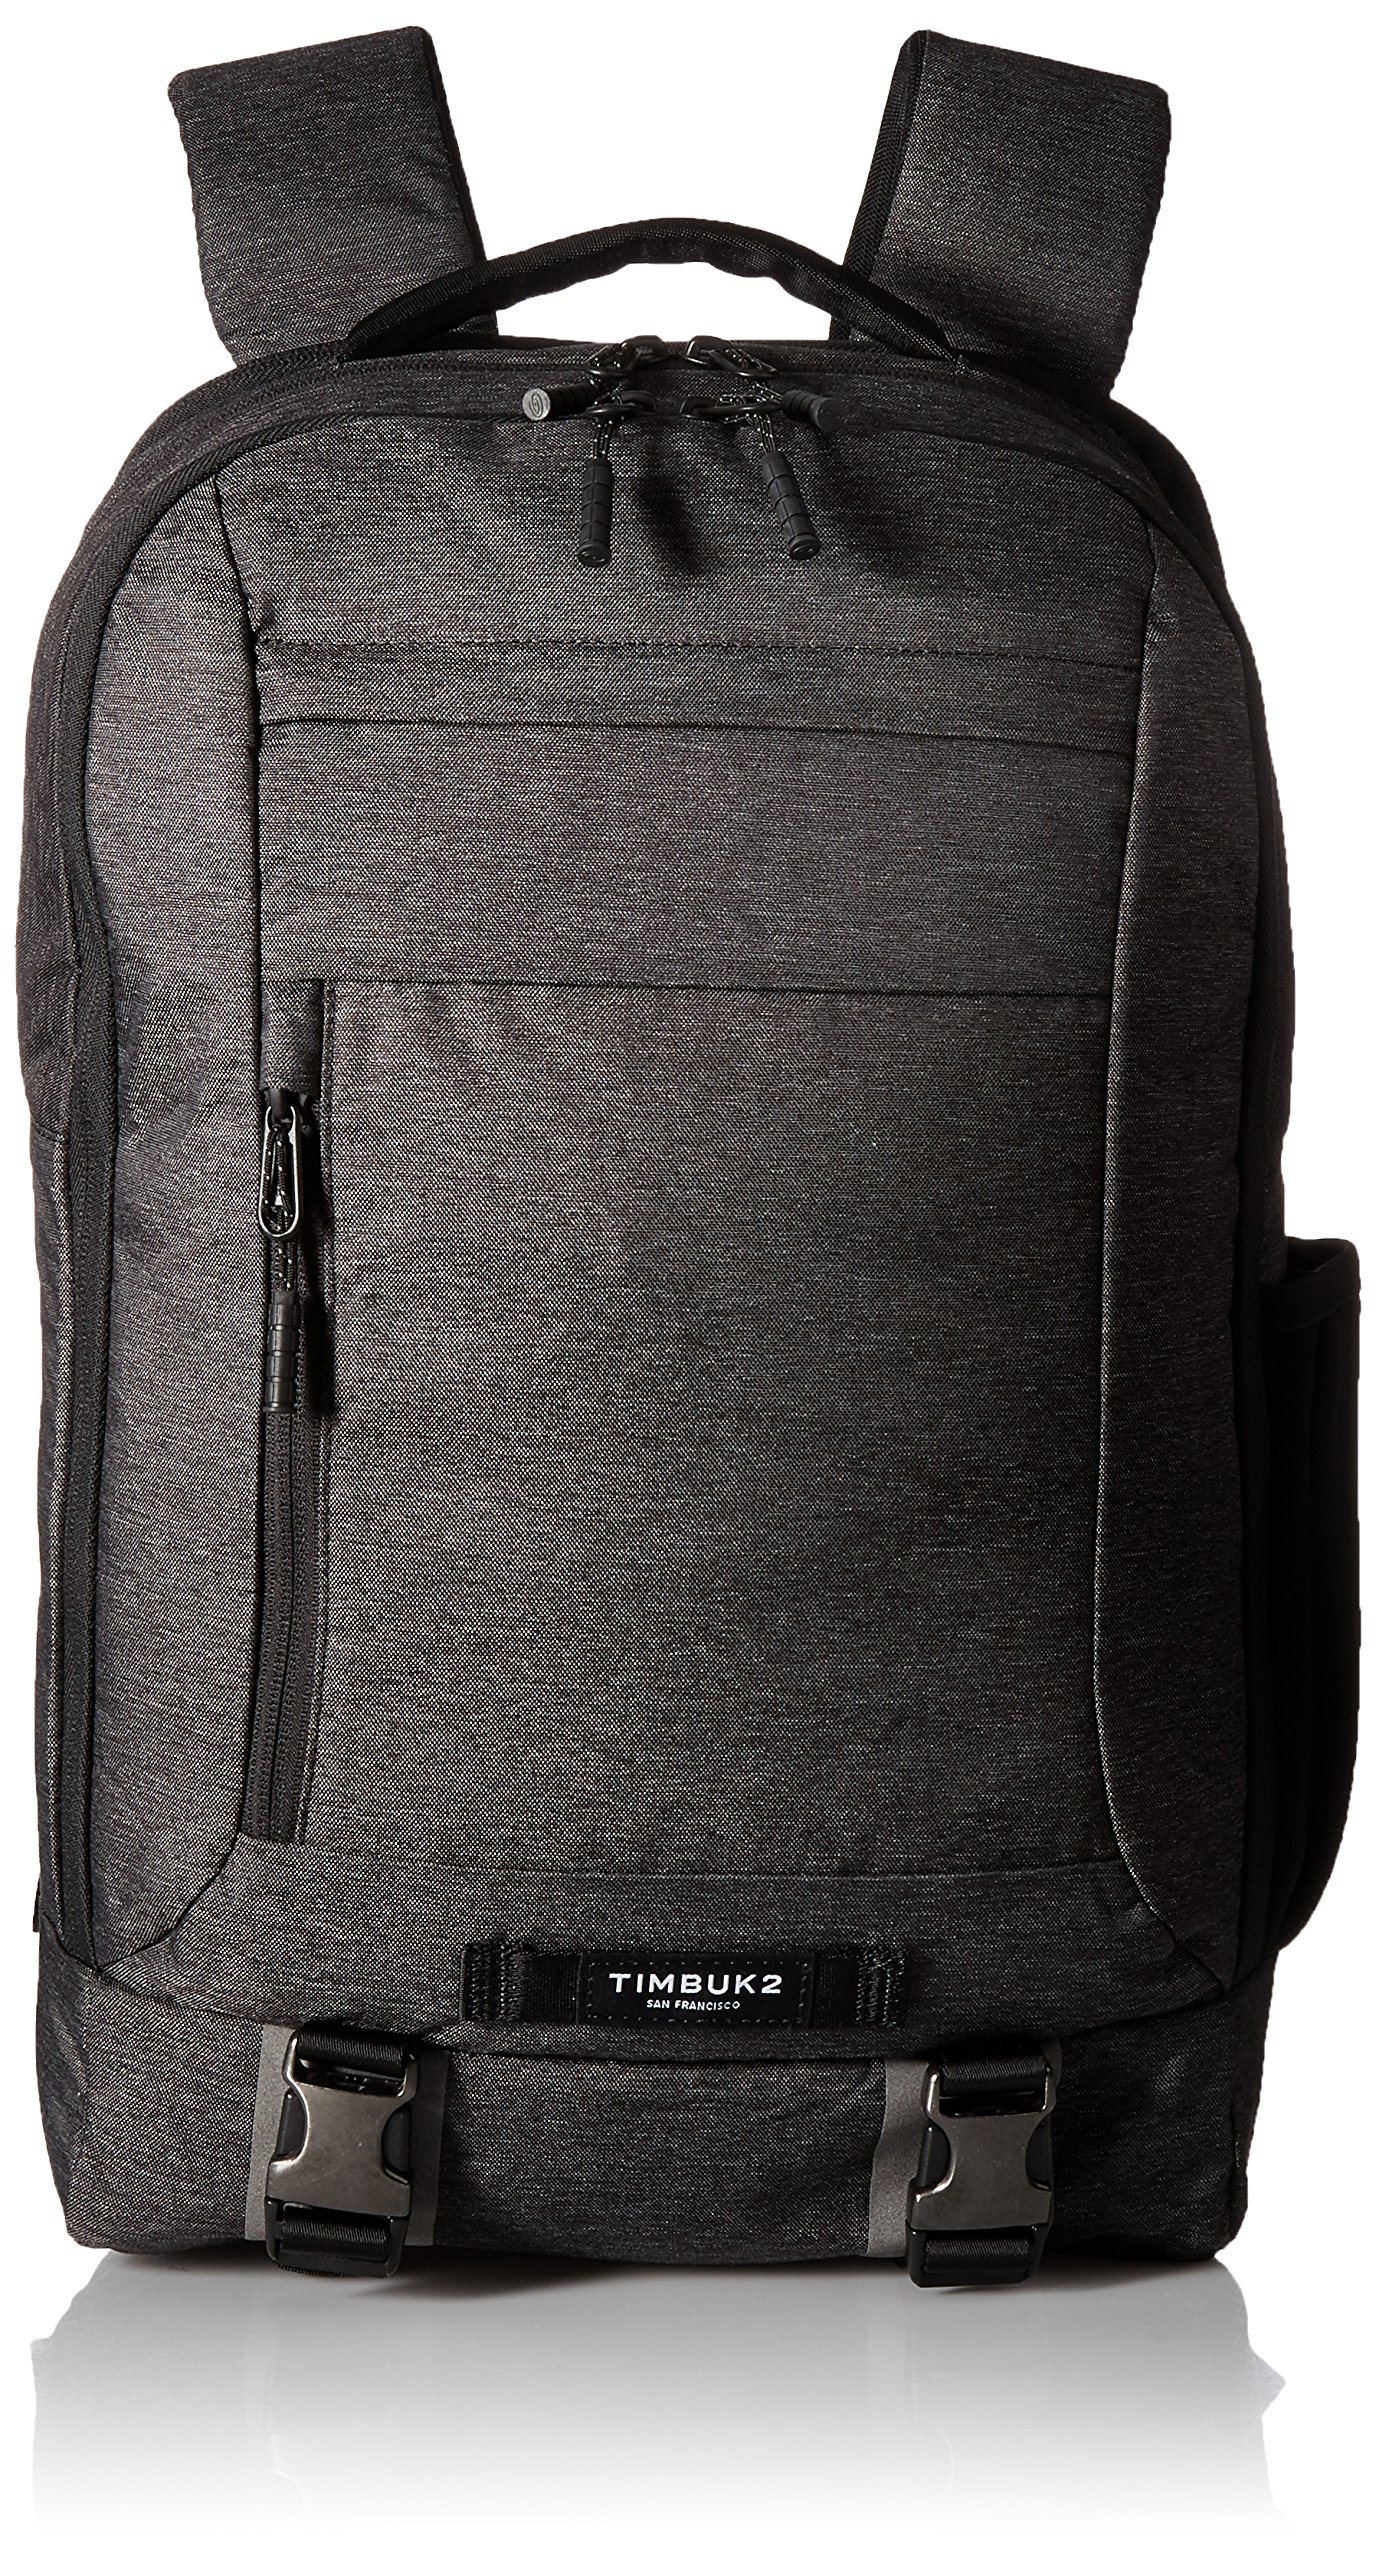 Timbuk2 The Authority Pack, Jet Black Static, OS, Jet Black Static, One Size by Timbuk2